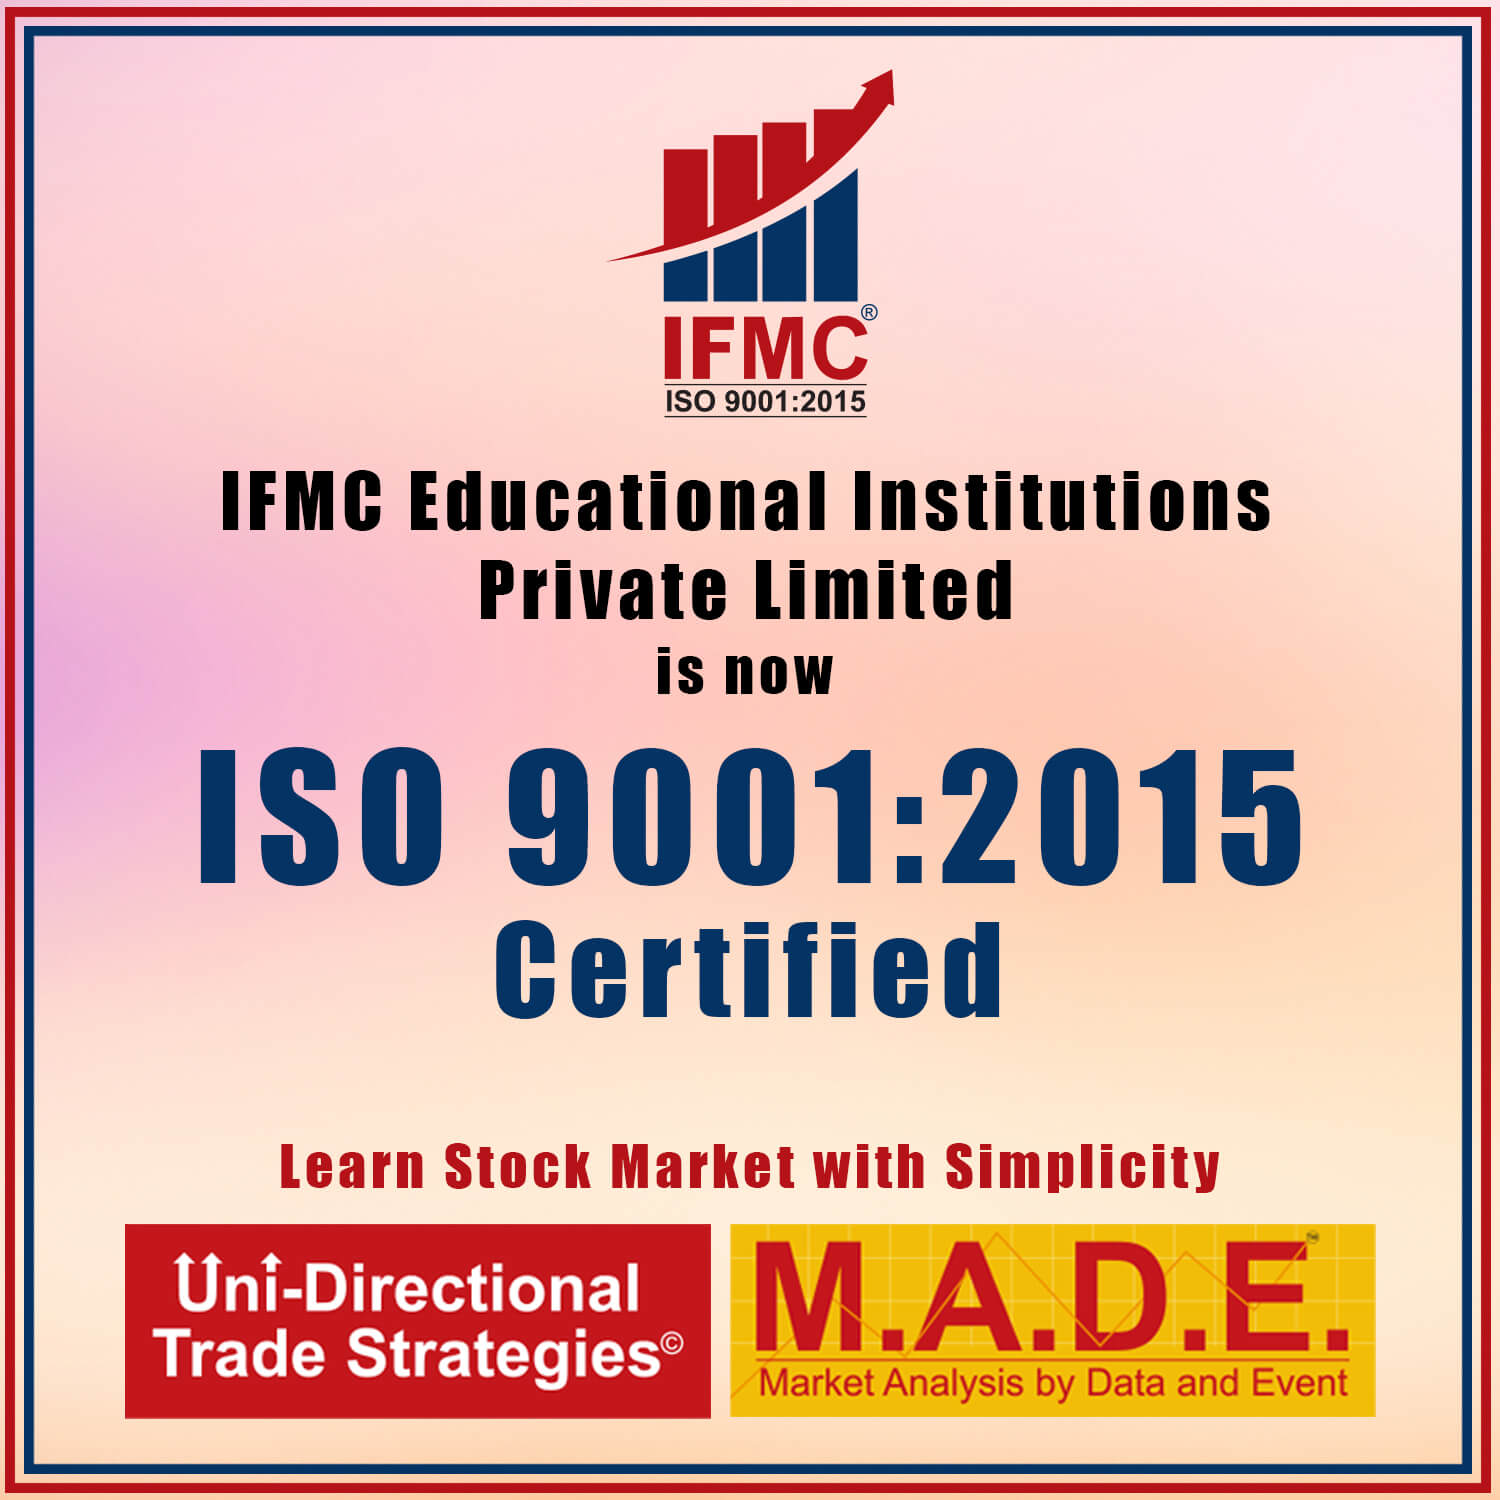 IFMC Educational Institutions Private Limited ISO 9001 - 2015 Certified